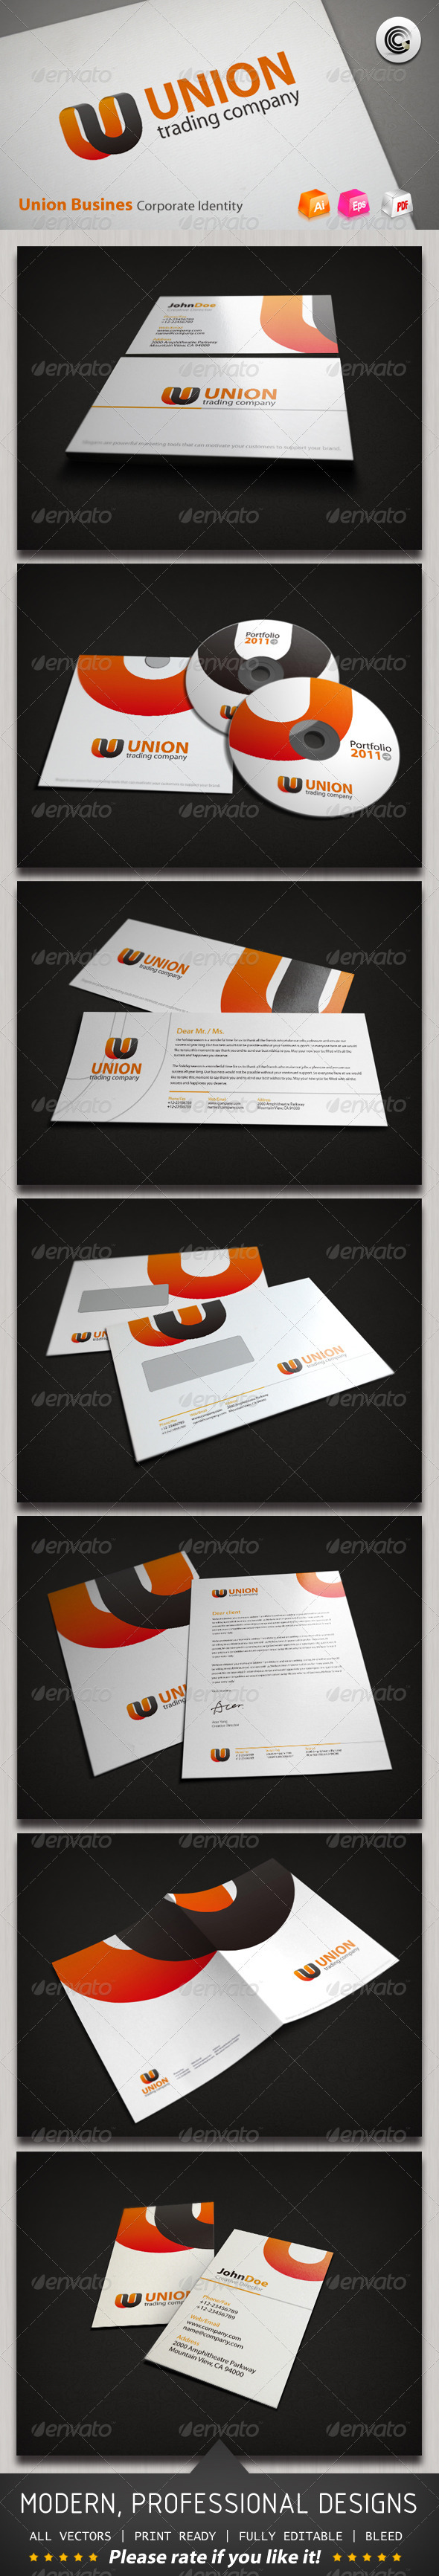 Union Busines Corporate Identity - Stationery Print Templates